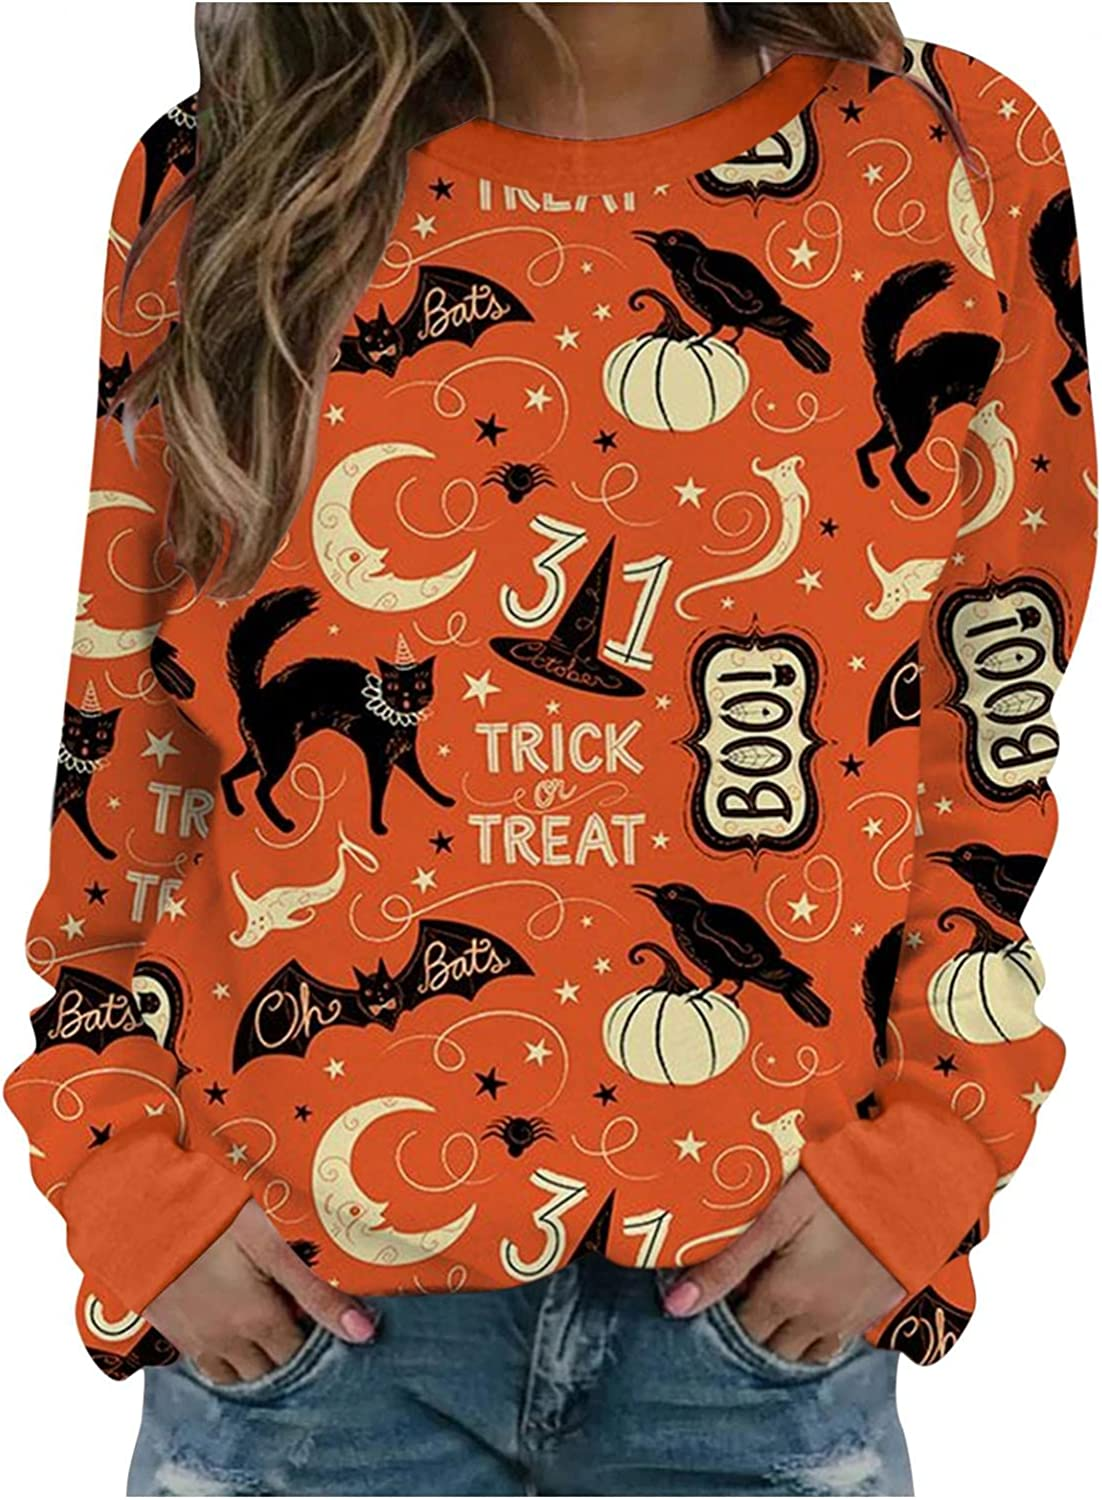 Haheyrte Crewneck Sweatshirts Womens Pumpkin Face Ghost Printed Pullover Tops Casual Long Sleeve O Neck Shirts Sweaters